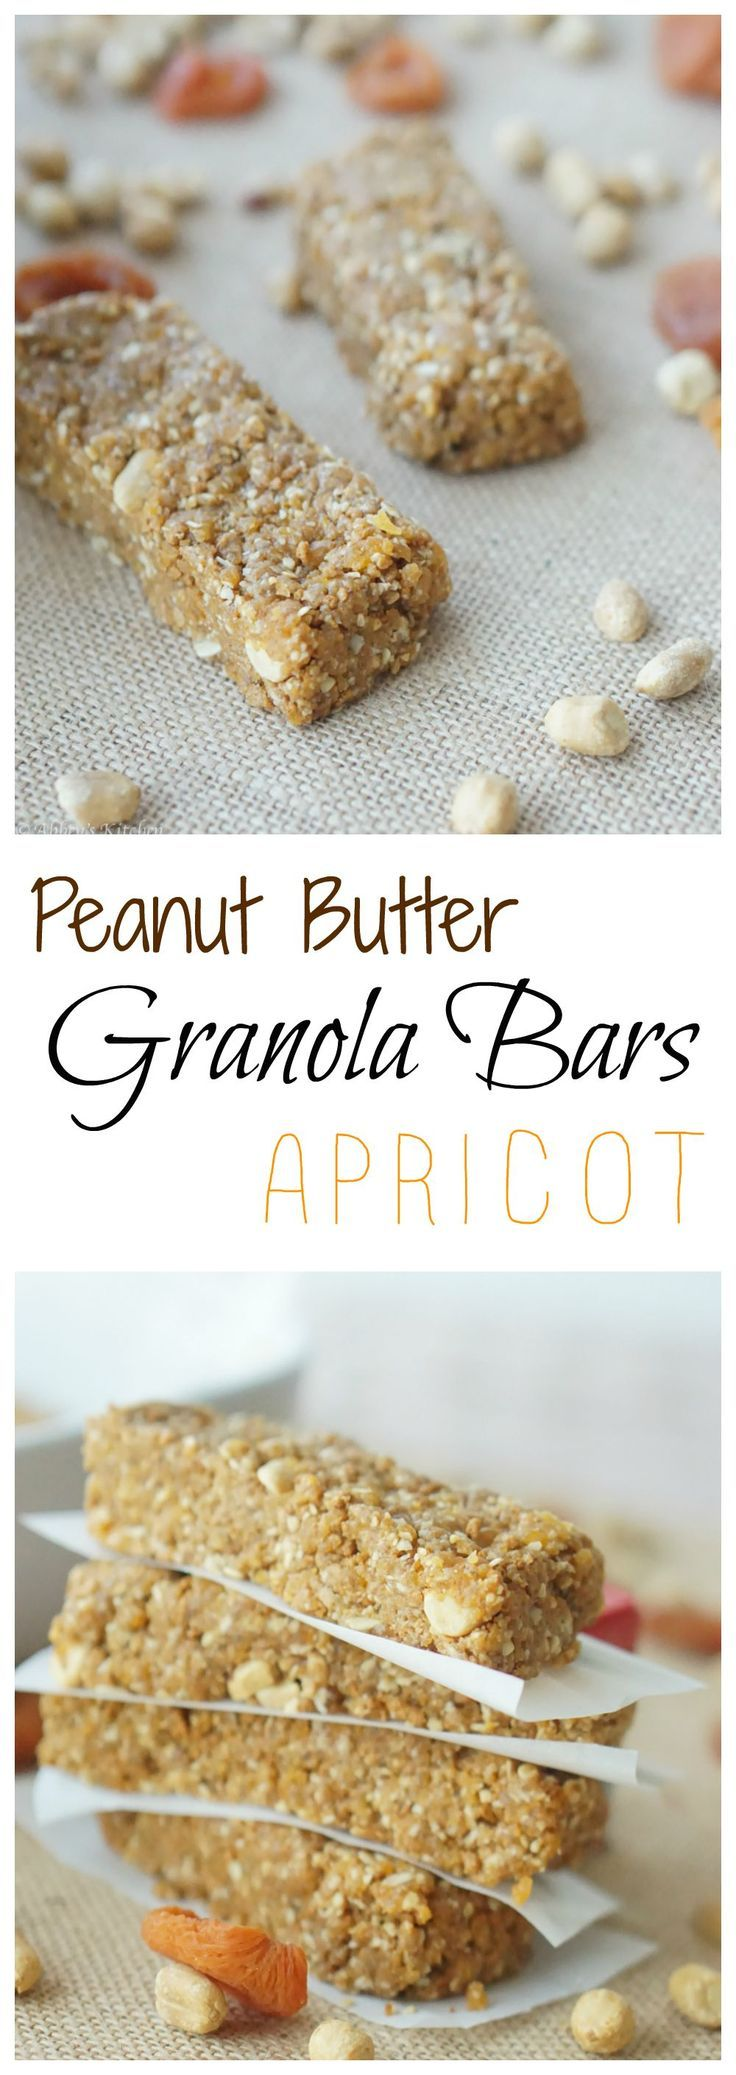 1000+ images about Snacks on Pinterest | Granola, Easy to make snacks ...